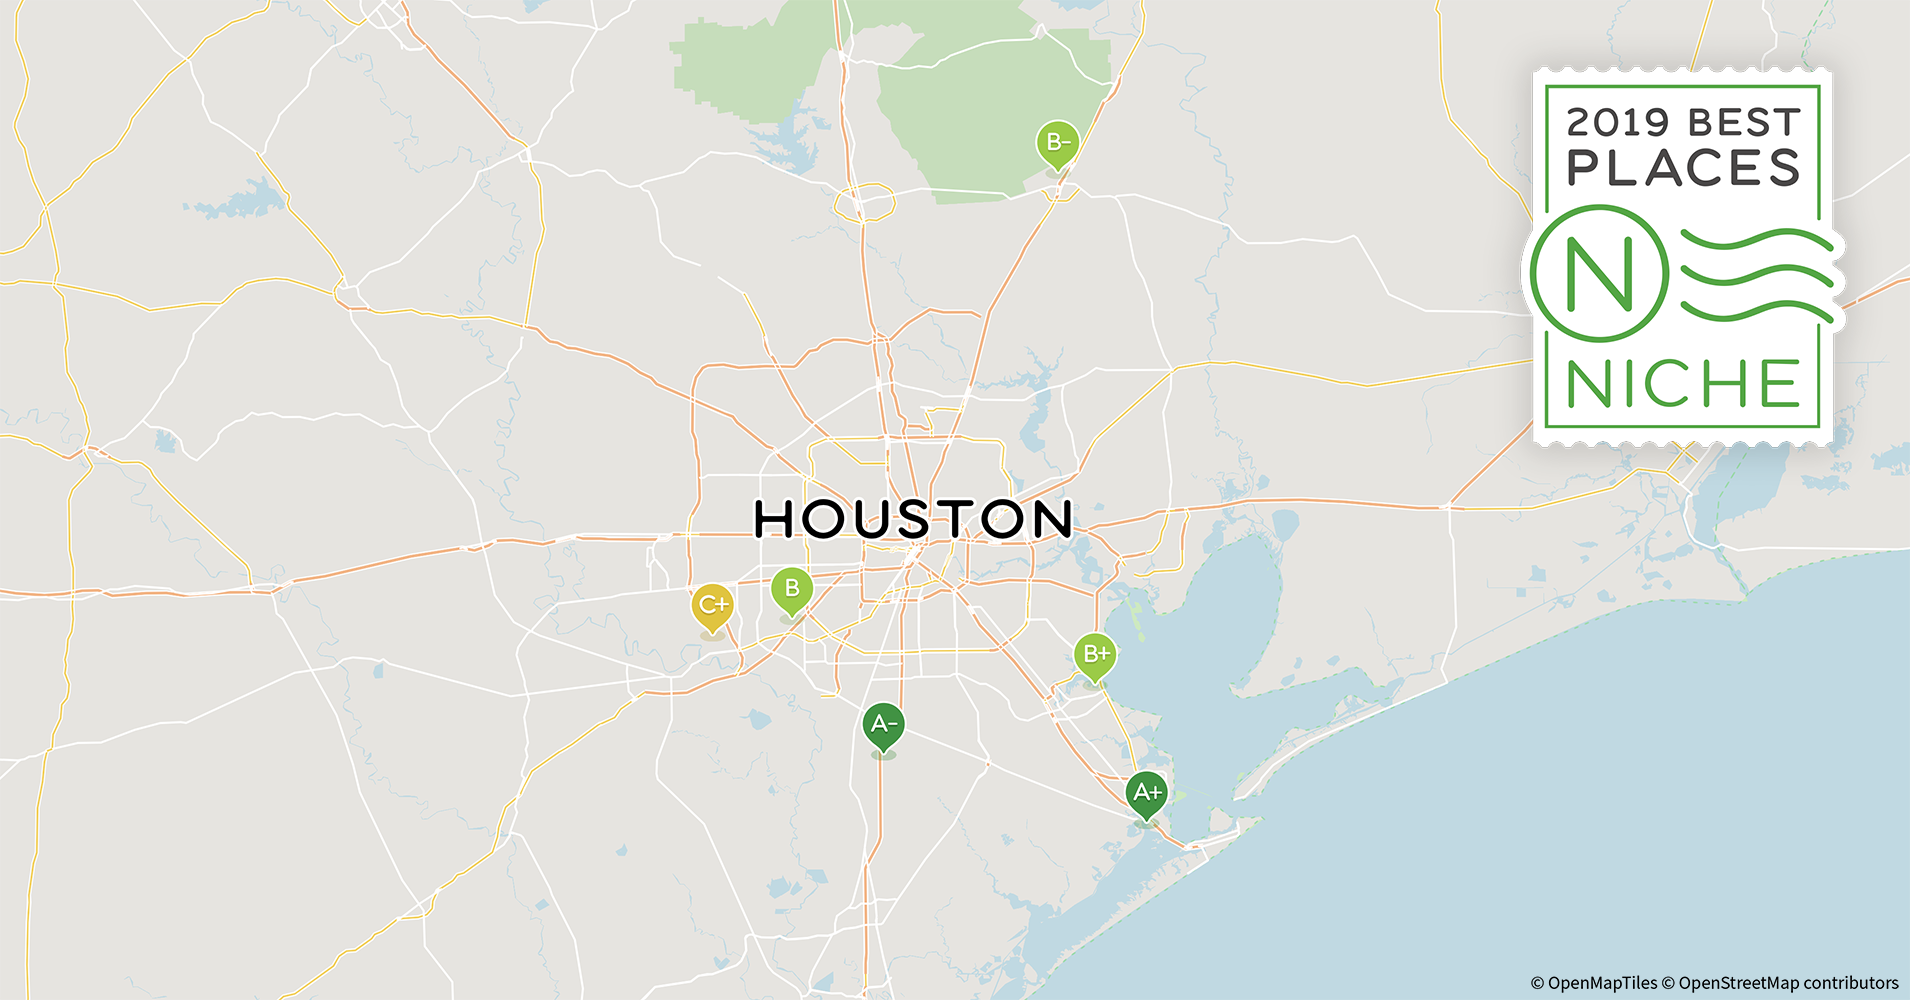 2019 Safe Neighborhoods in Houston Area - Niche